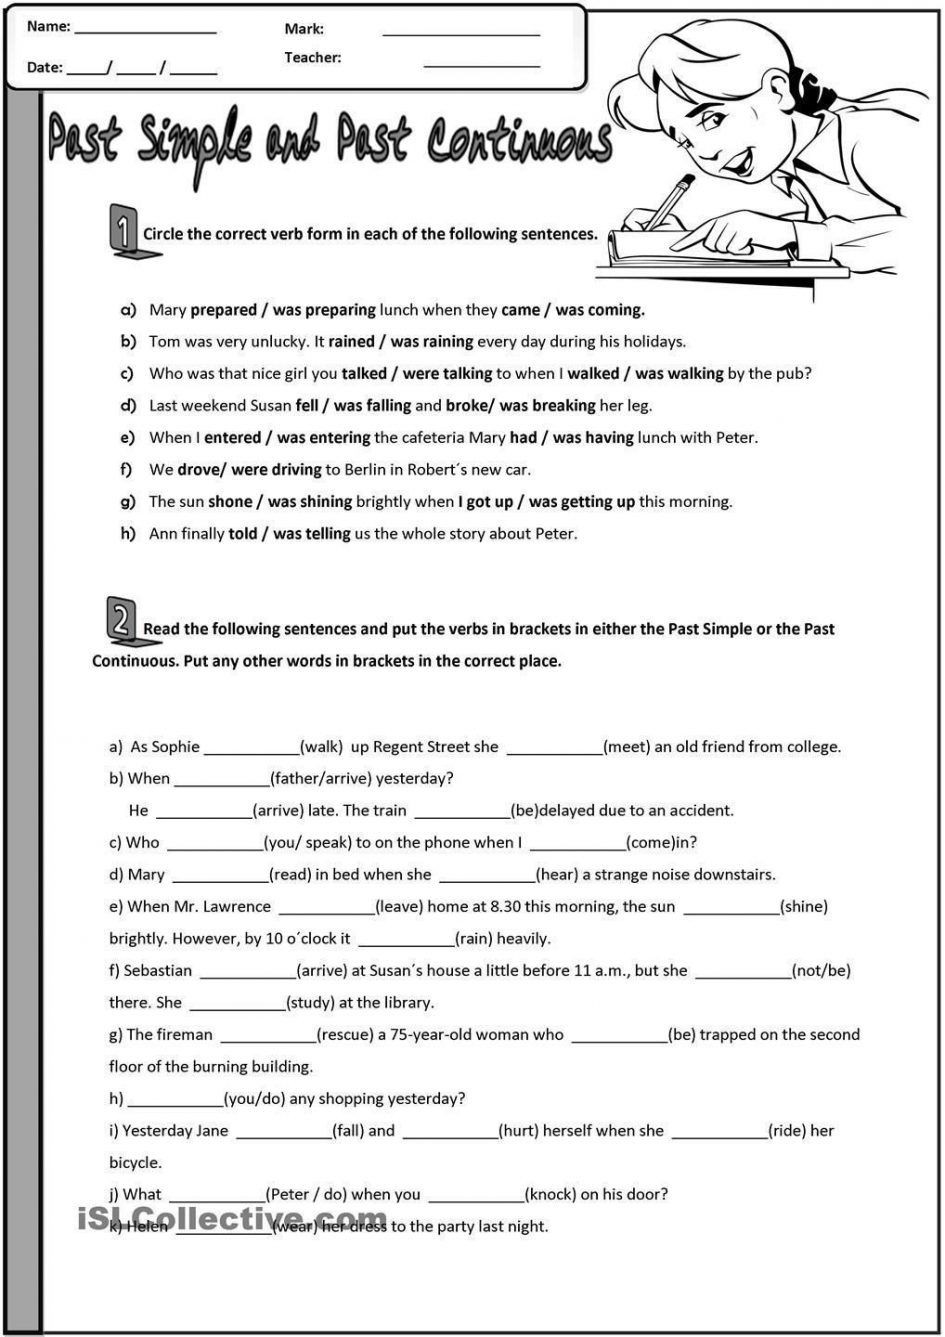 Paragraph Editing Worksheets High School Excel Fun Grammar Worksheets for High School Kids